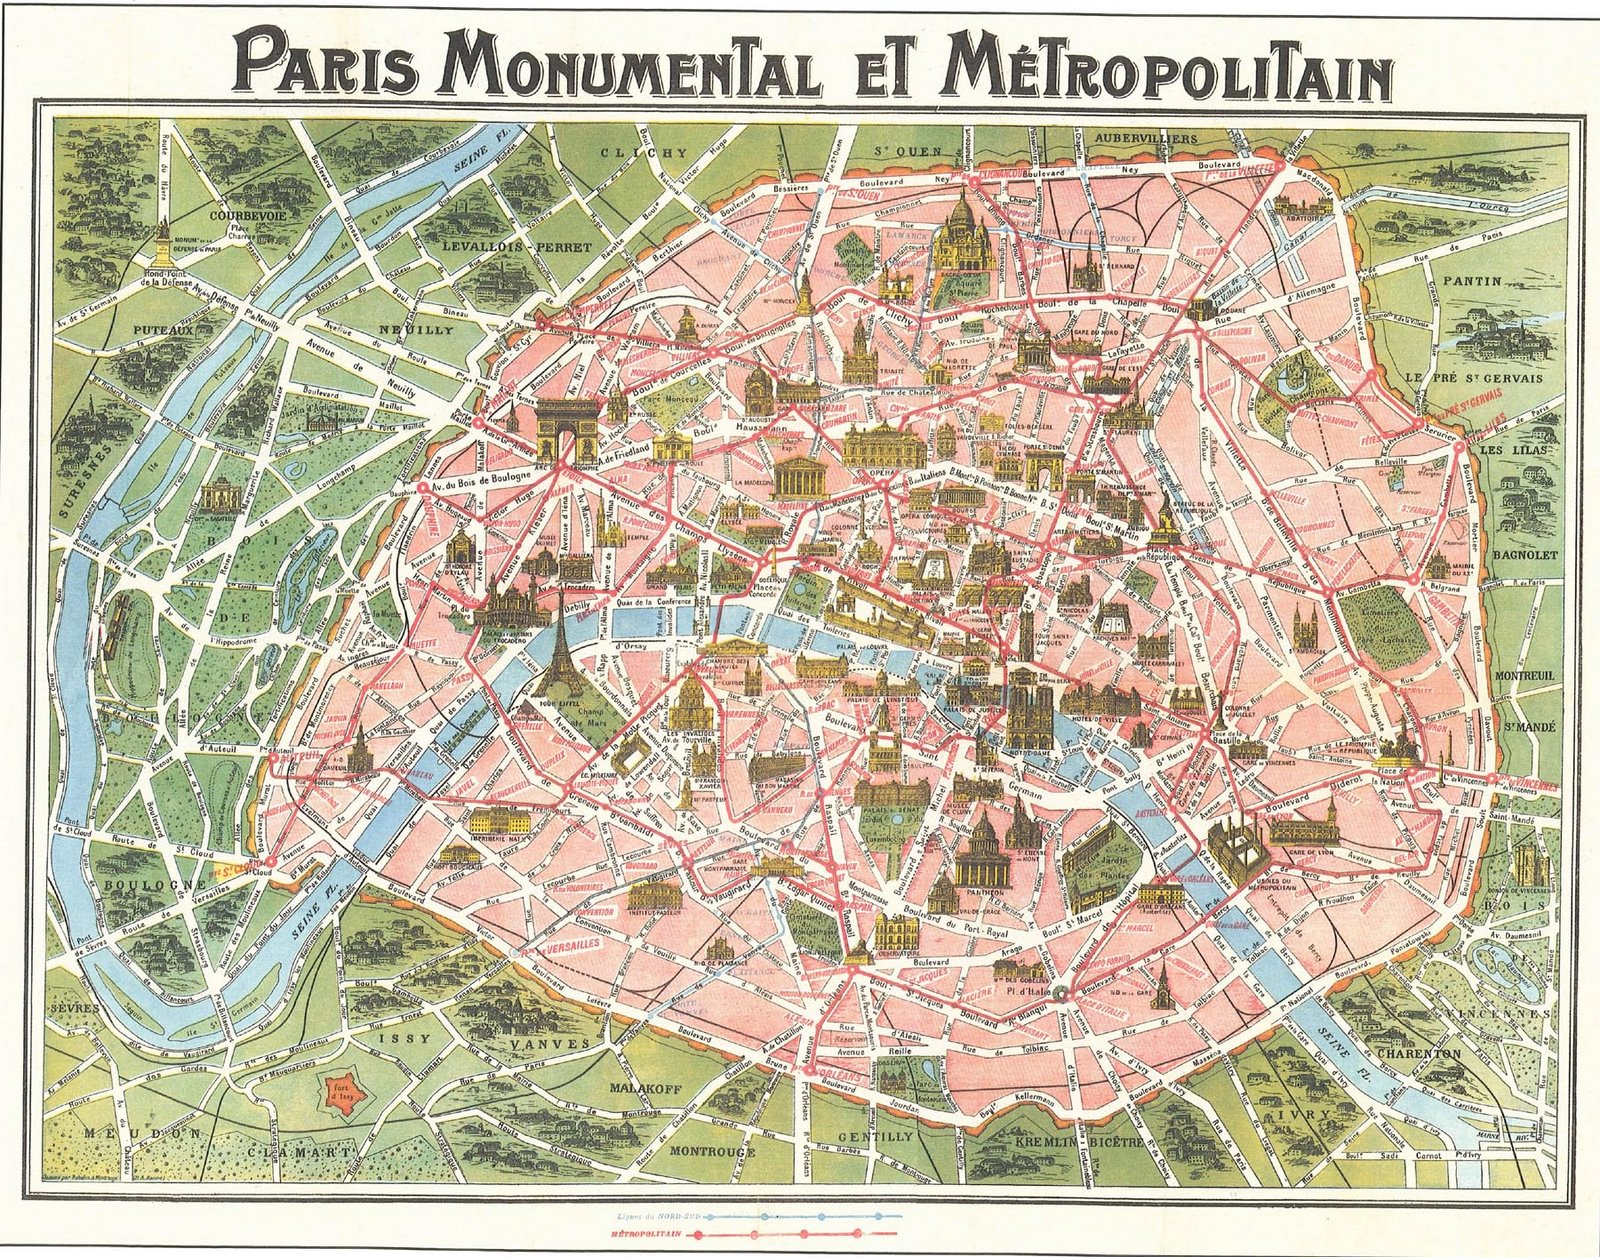 Map Of Paris Circa Victorian Paris - Paris map monuments